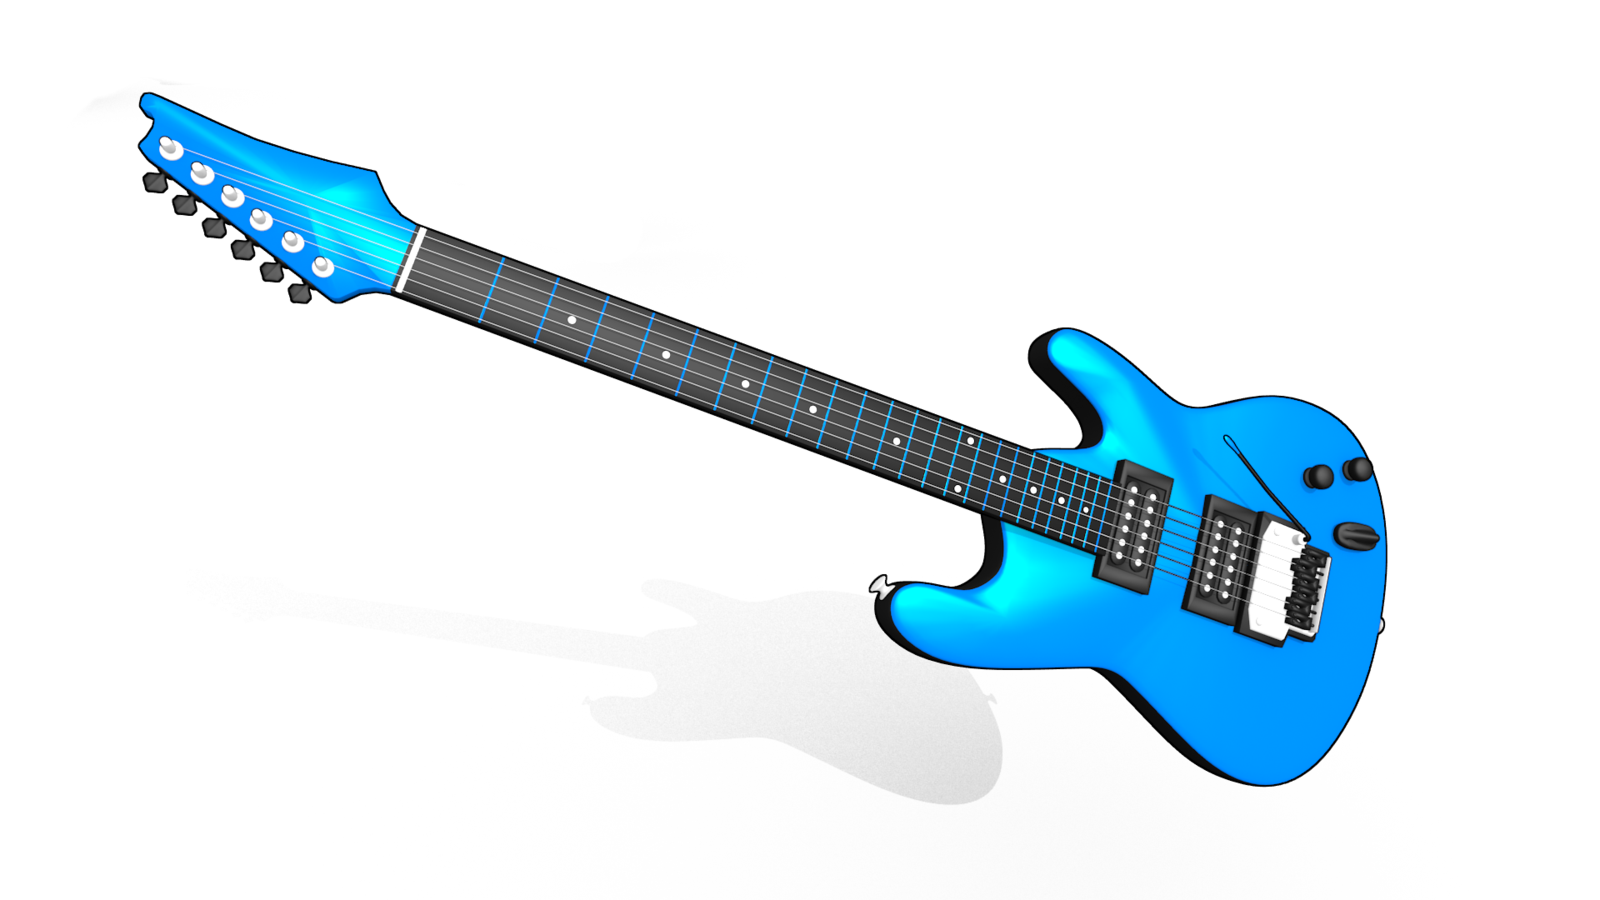 Electric Guitar 3D model by Aisorisu Electric Guitar 3D model by Aisorisu - 3d PNG HD